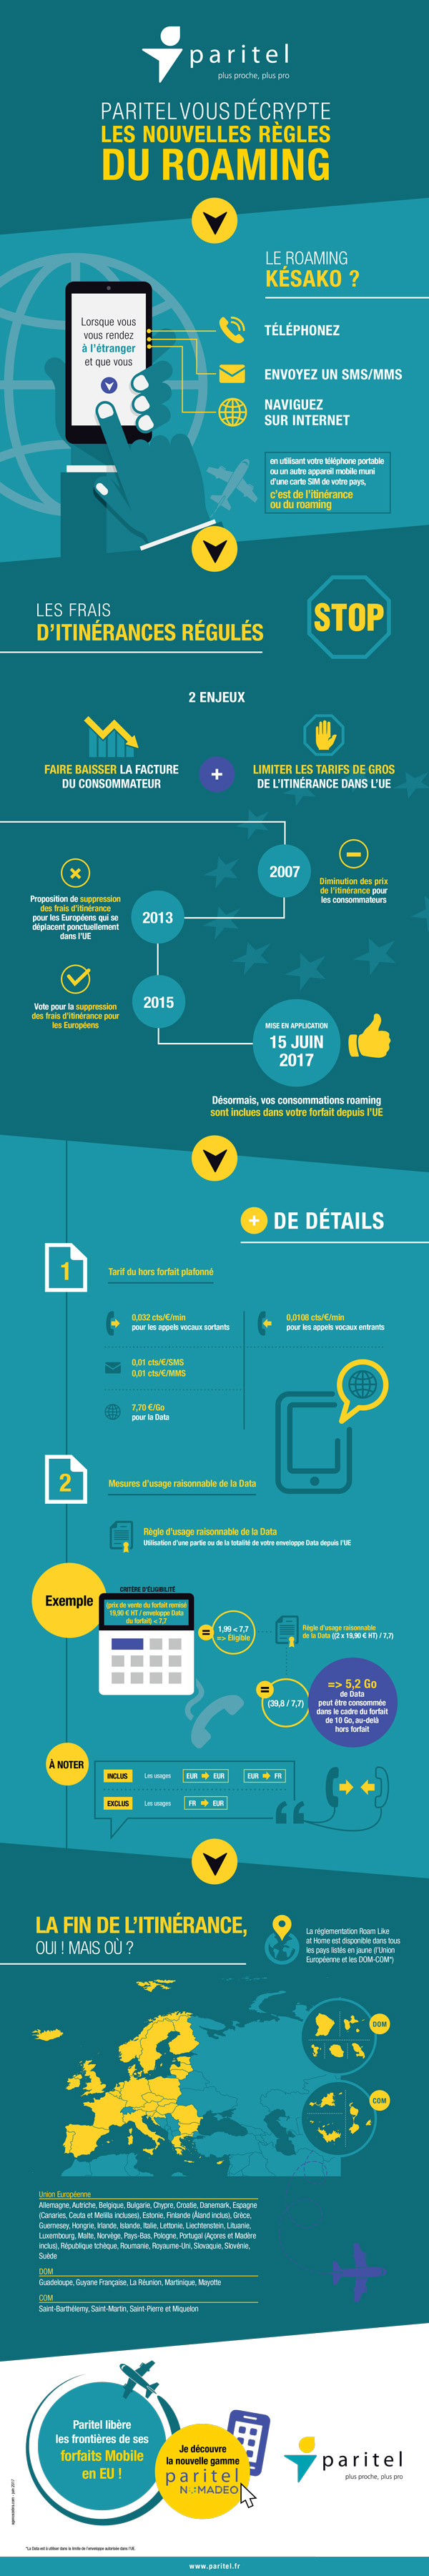 infographie_comprendre_roaming_paritel